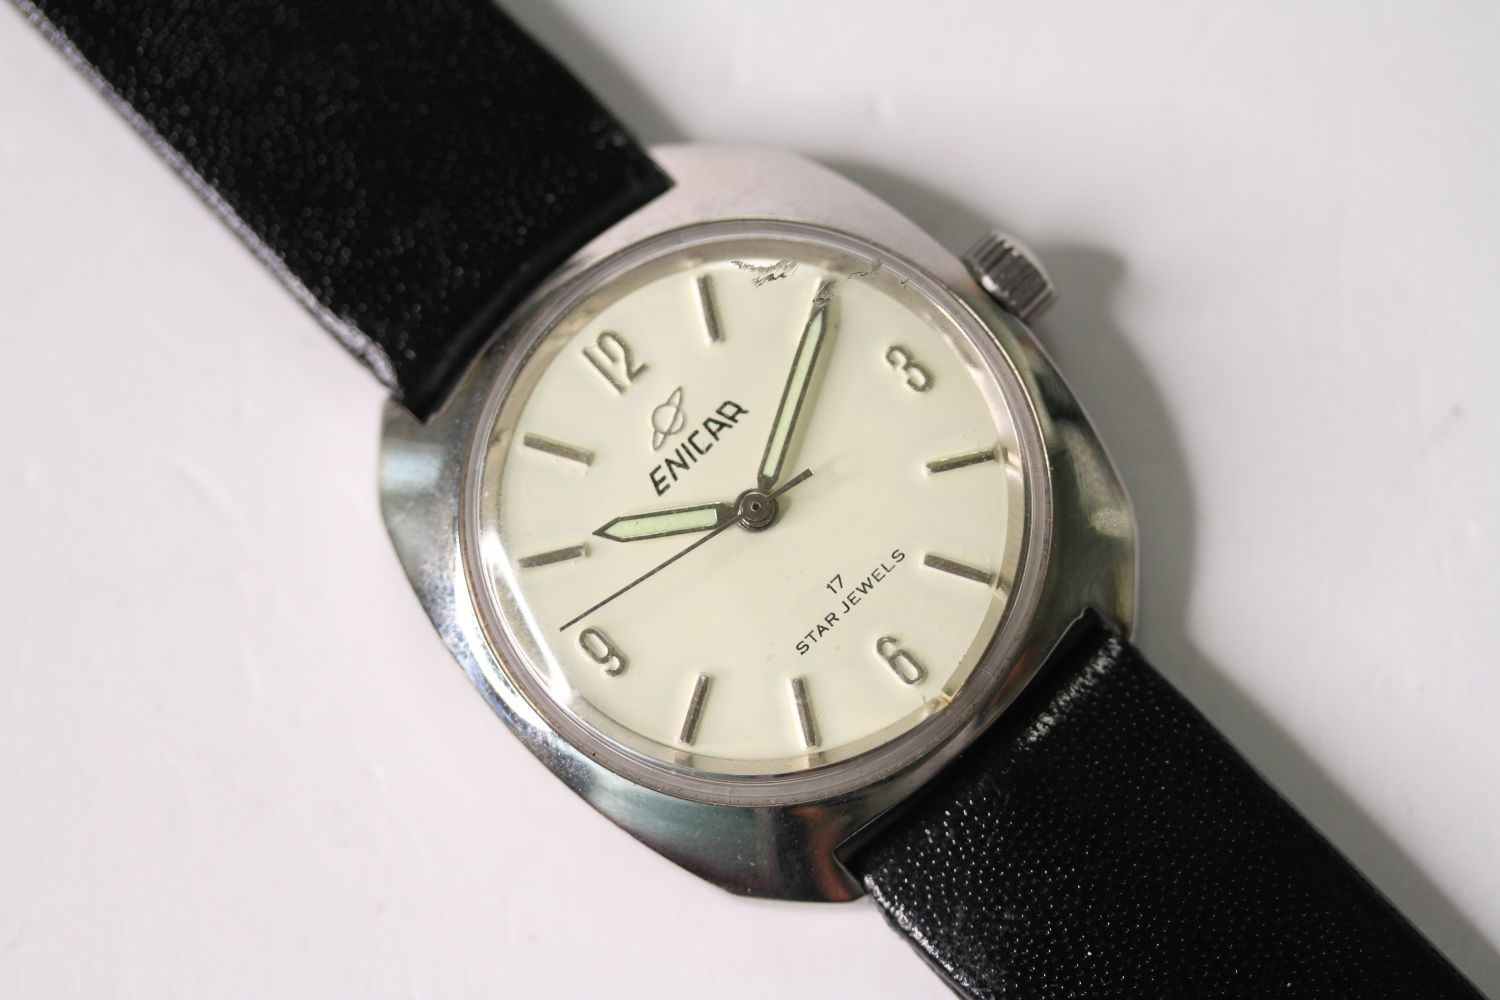 *TO BE SOLD WITHOUT RESERVE* ENICAR STAR JEWELS AUTOMATIC WRISTWATCH, circular cream dial with